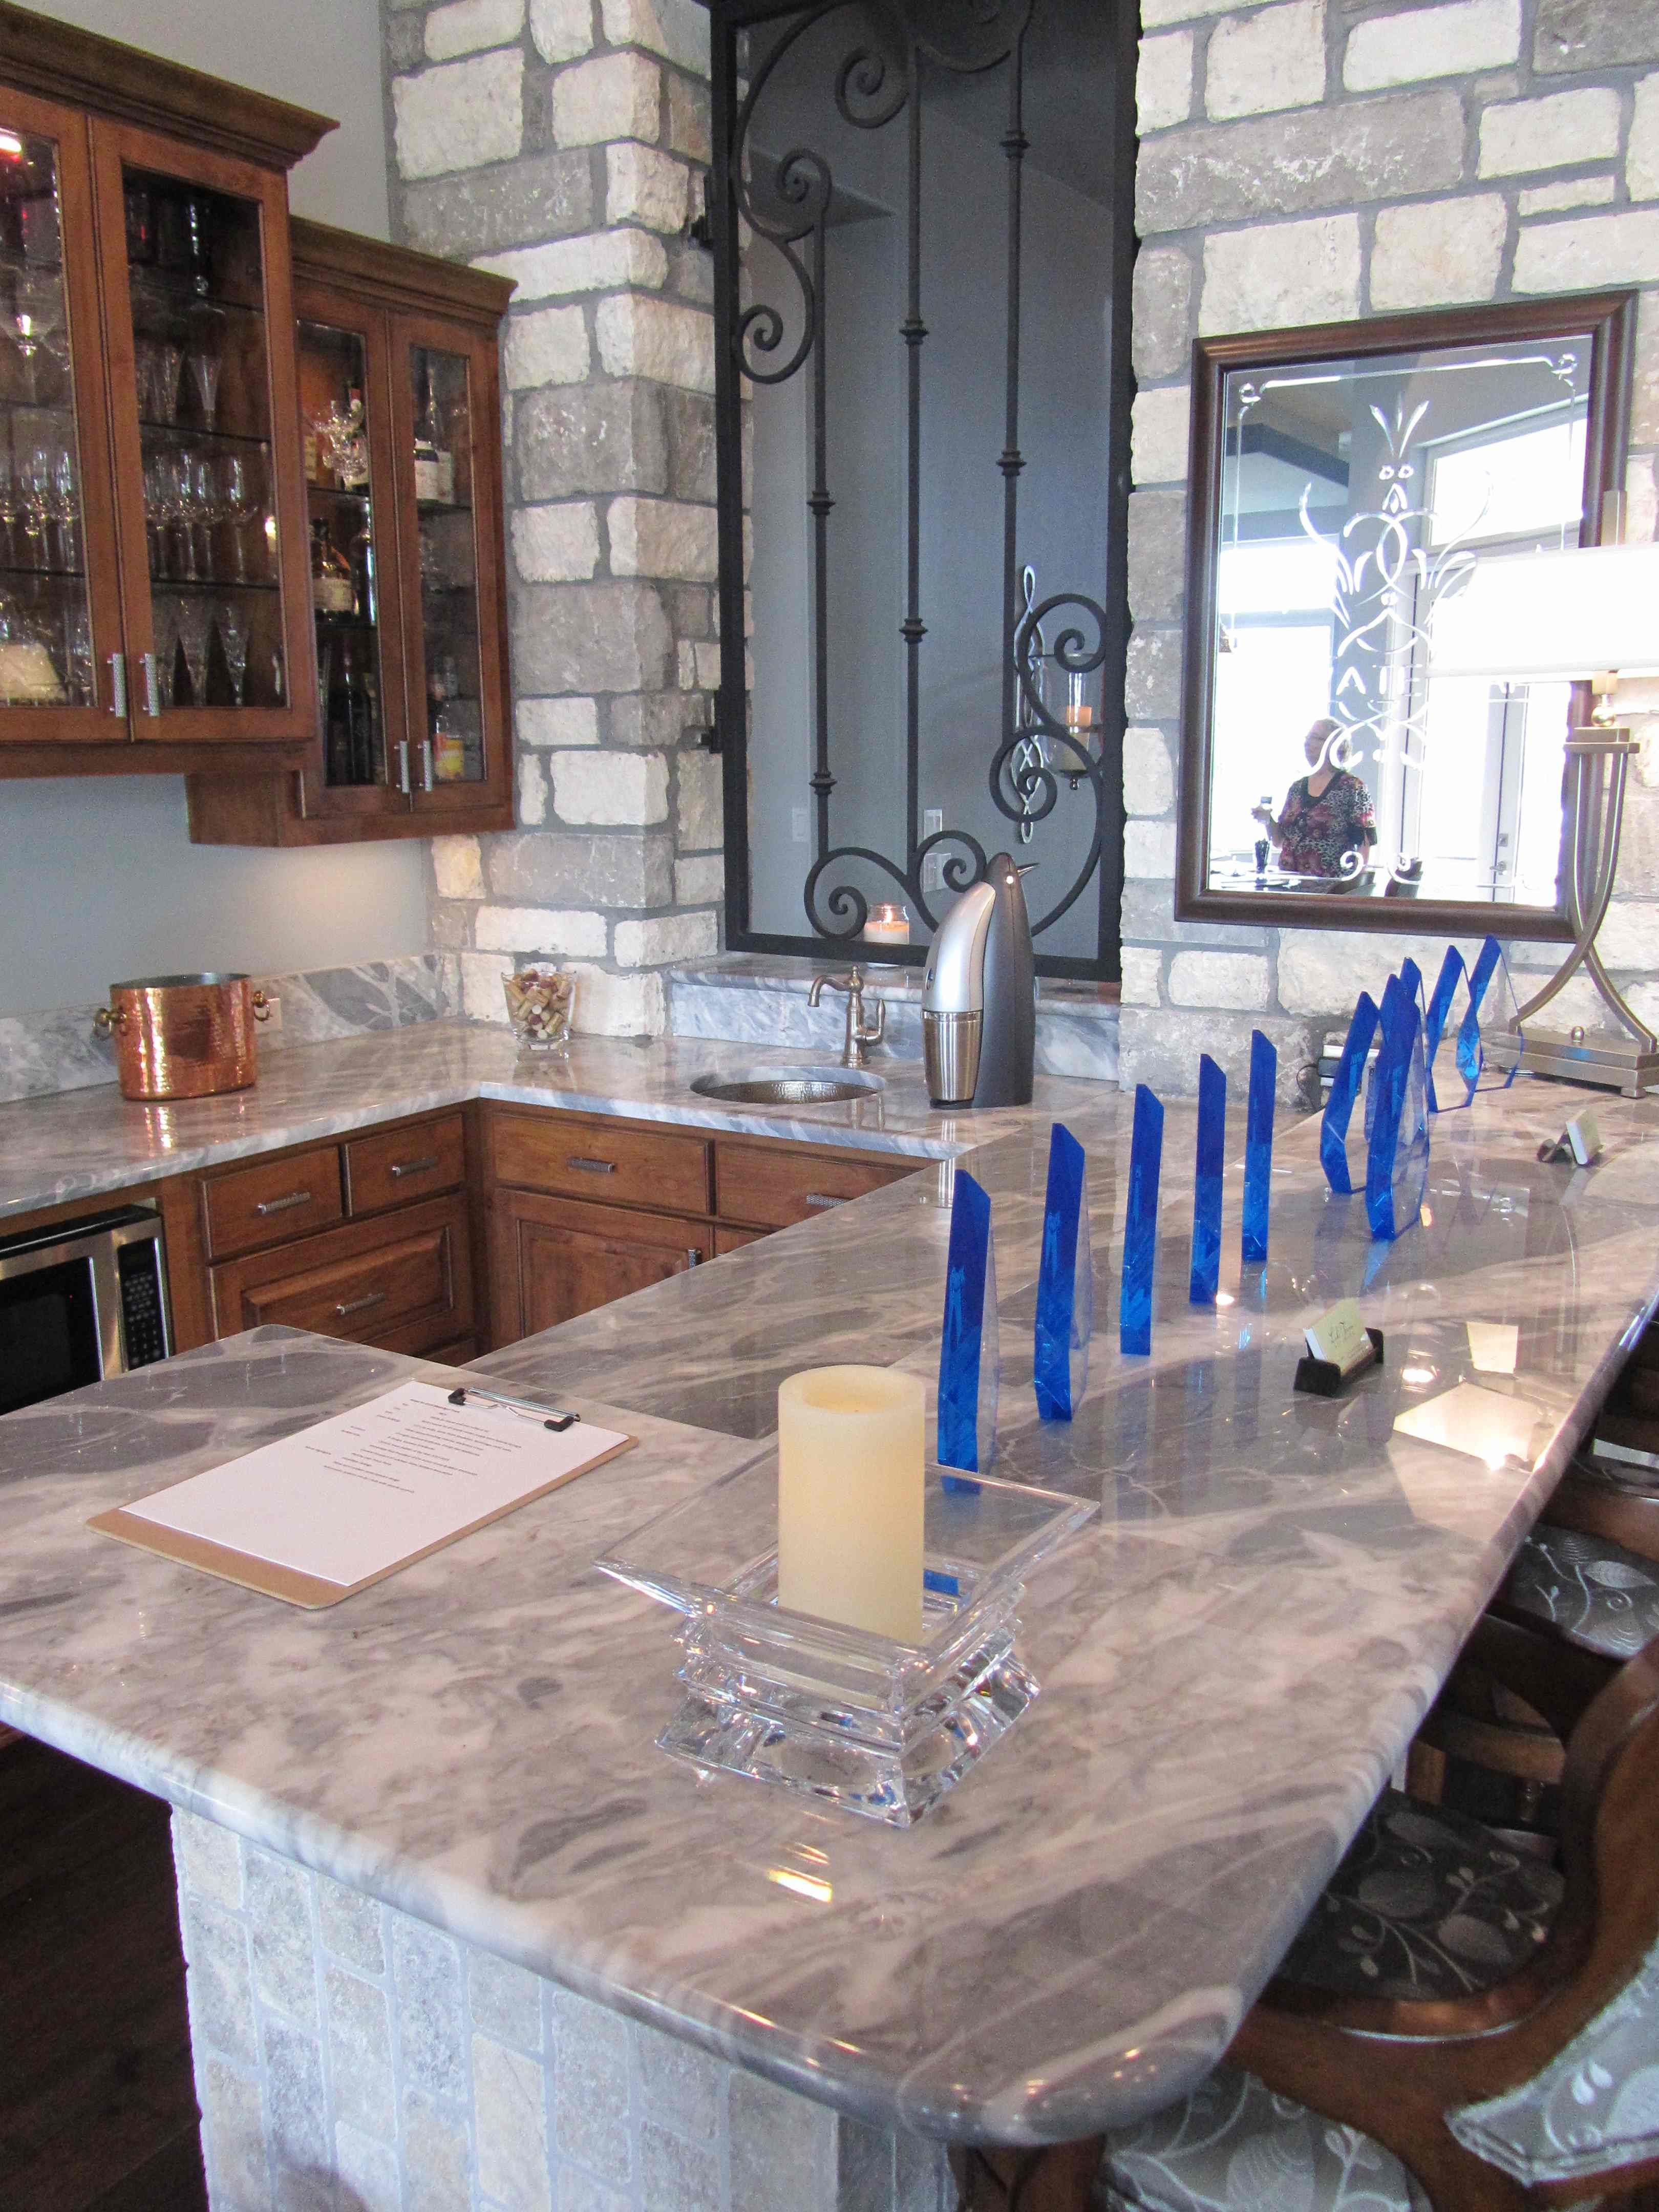 Lapidus premium product search marva marble and granite - Kitchen Images Showing Countertops And Islands Including Granite Marble And Quartzite In Many Different Colors